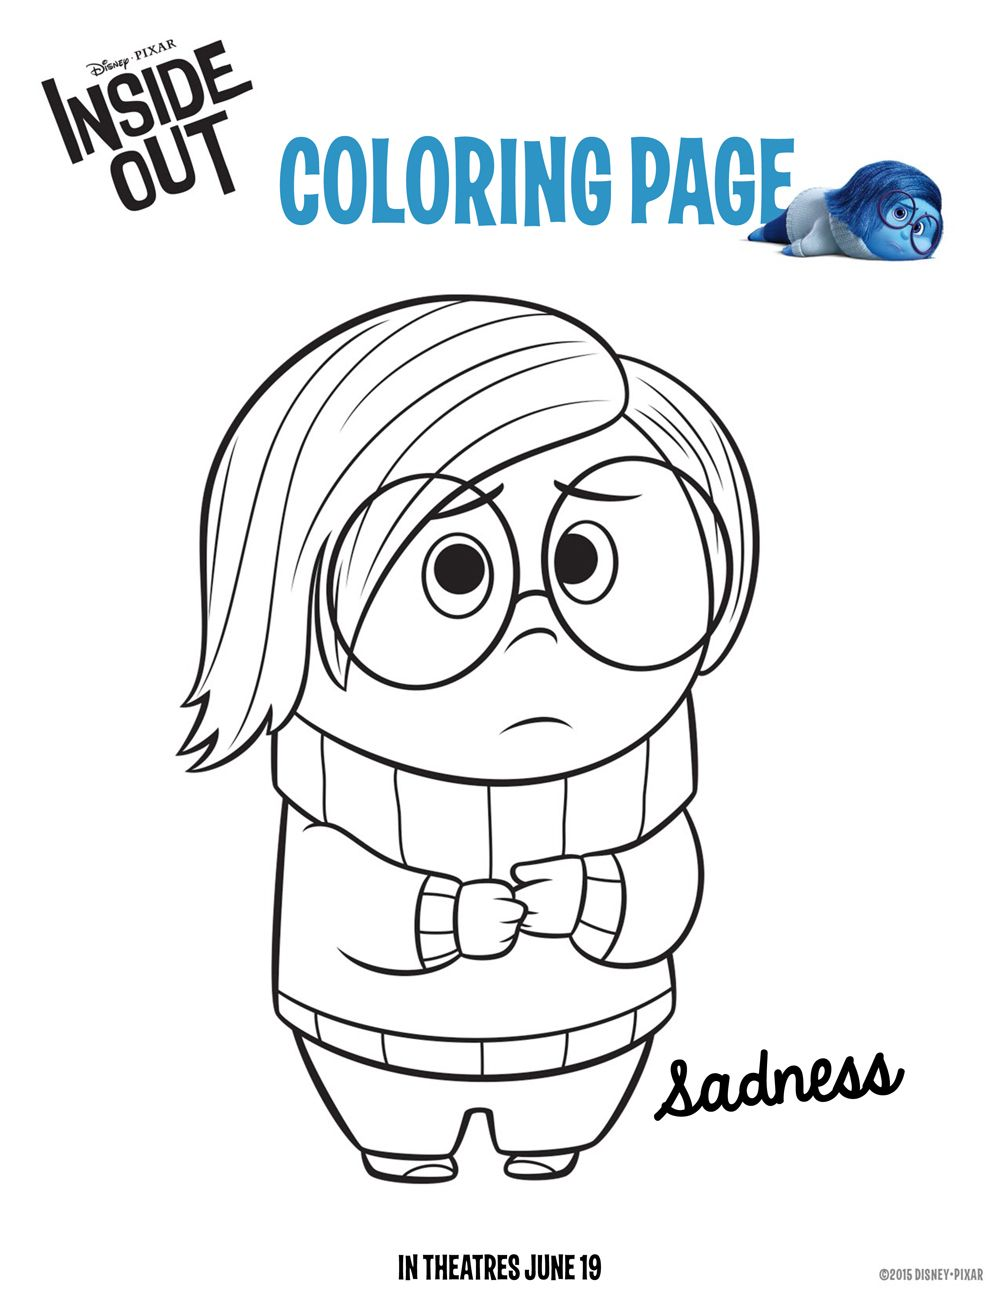 Disney S Inside Out Movie Coloring Pages Create Play Travel Inside Out Coloring Pages Coloring Pictures Disney Coloring Pages